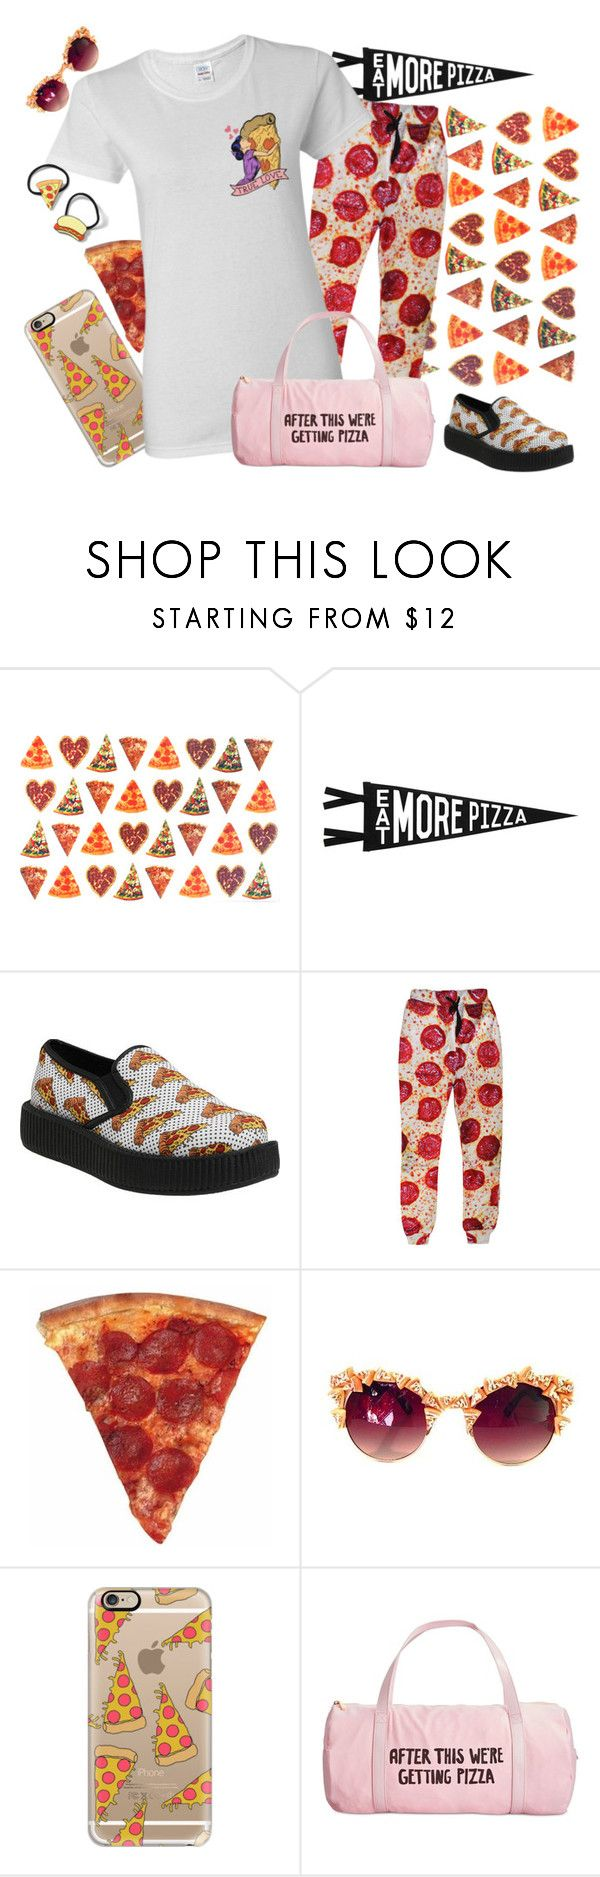 """""""pizza"""" by htotheizzyclothing on Polyvore featuring Trixxie, Three Potato Four, Casetify, ban.do, Topshop, love and pizza"""